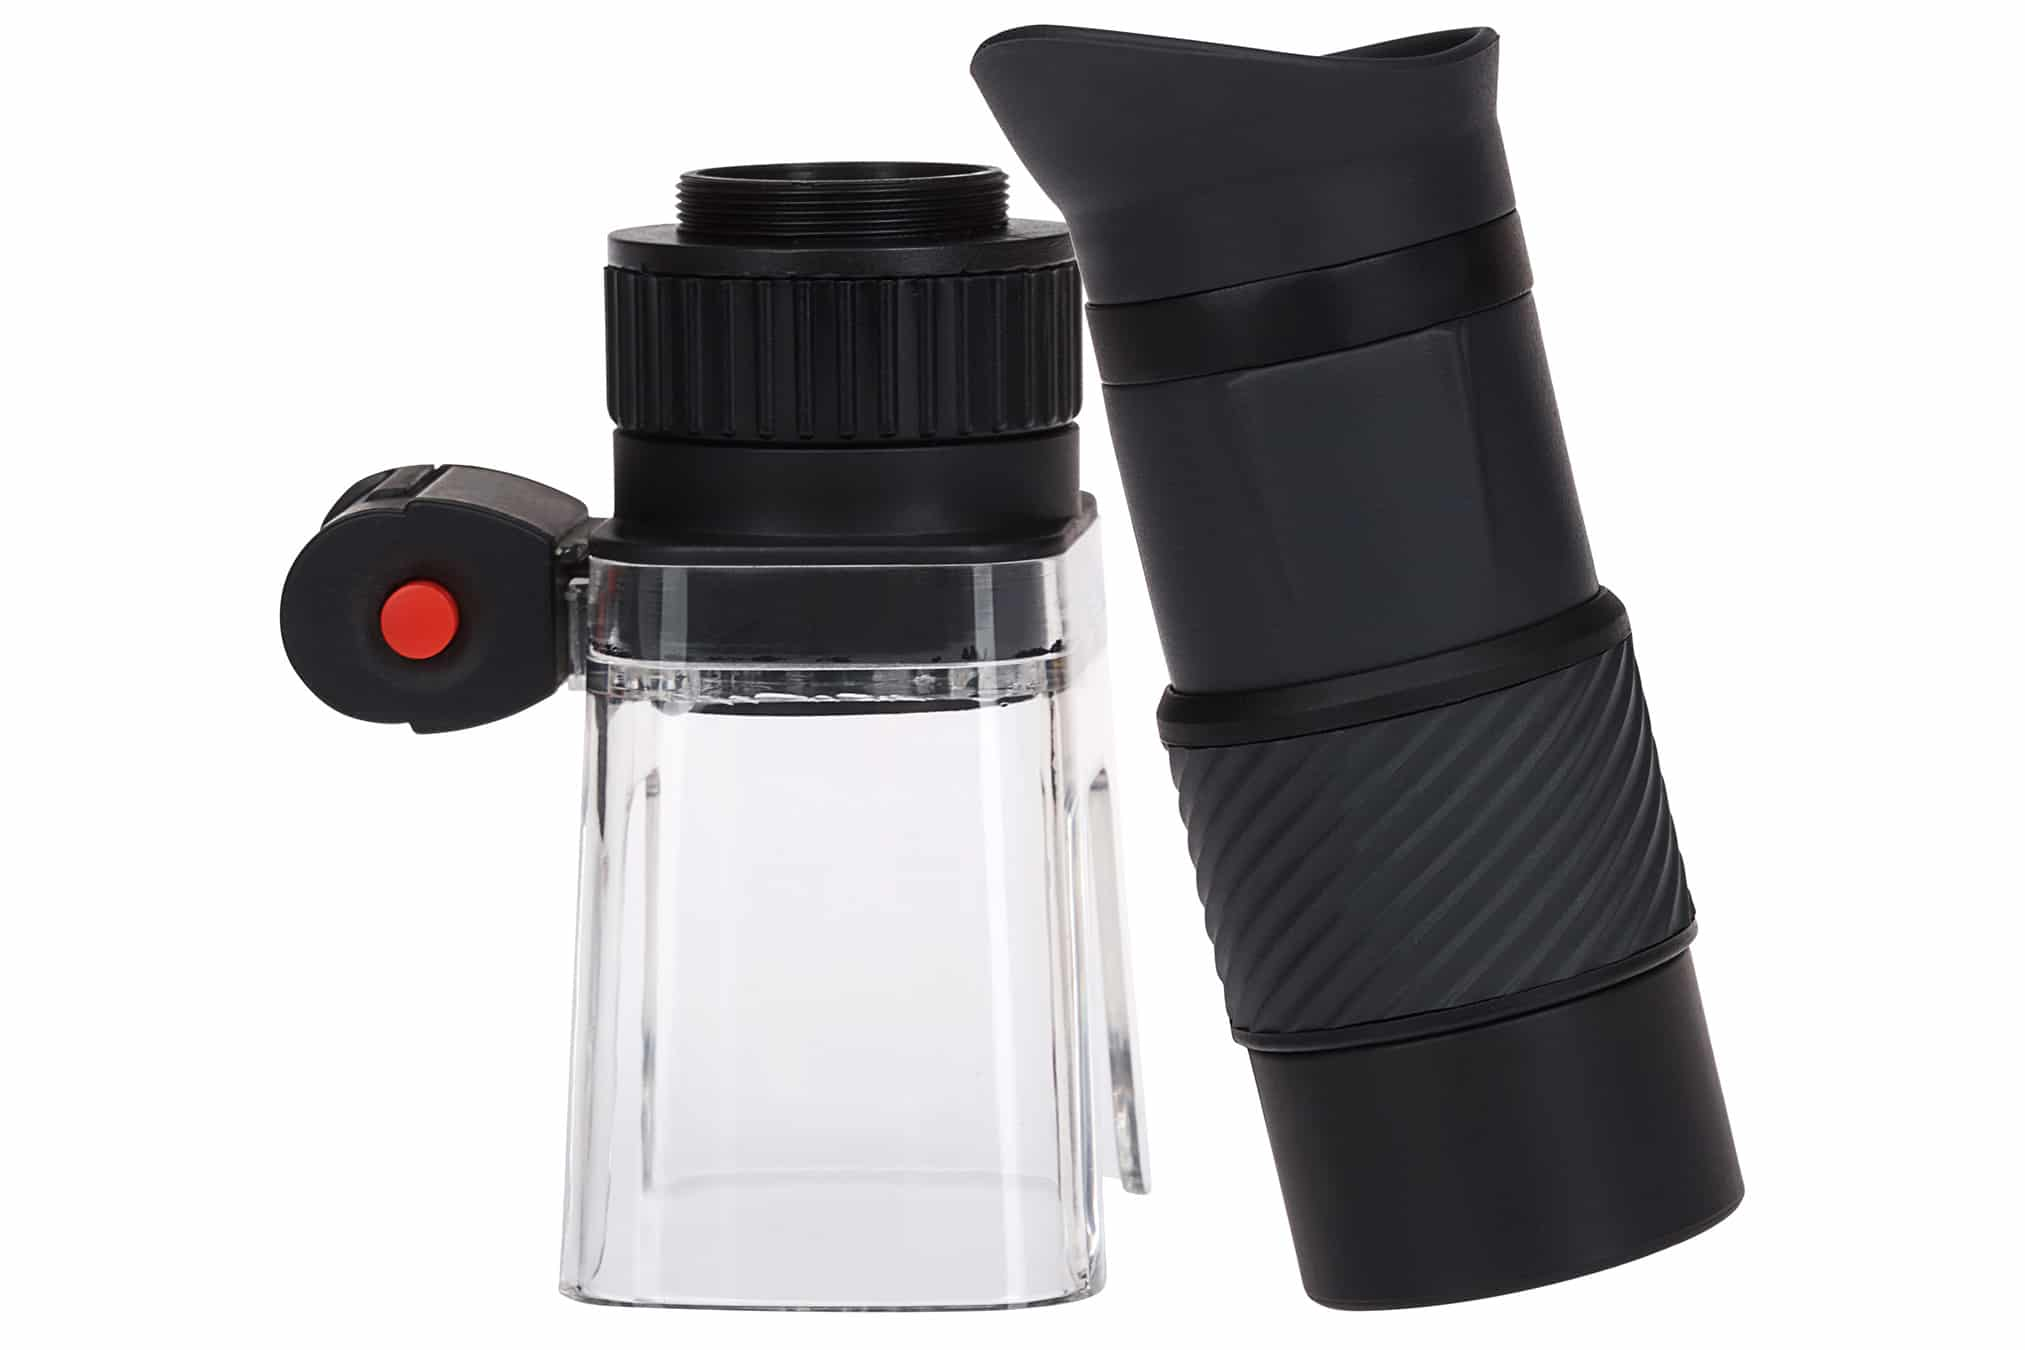 Sunagor MagnaScope 7x Magnification Monocular and 4x Magnifying Glass